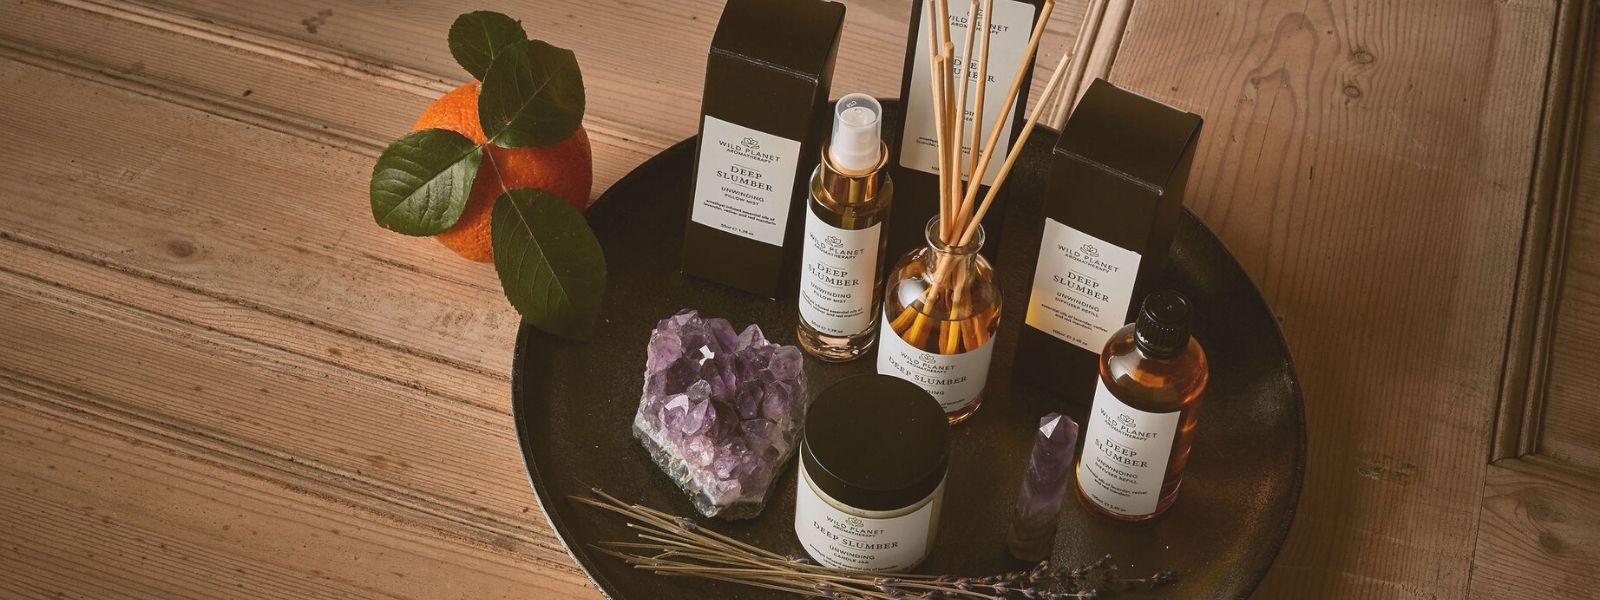 Deep Slumber Reed Diffuser, Pillow Mist and Candle Jar by Wild Planet Aromatherapy next to dried lavender, large amethyst crystal and mandarin